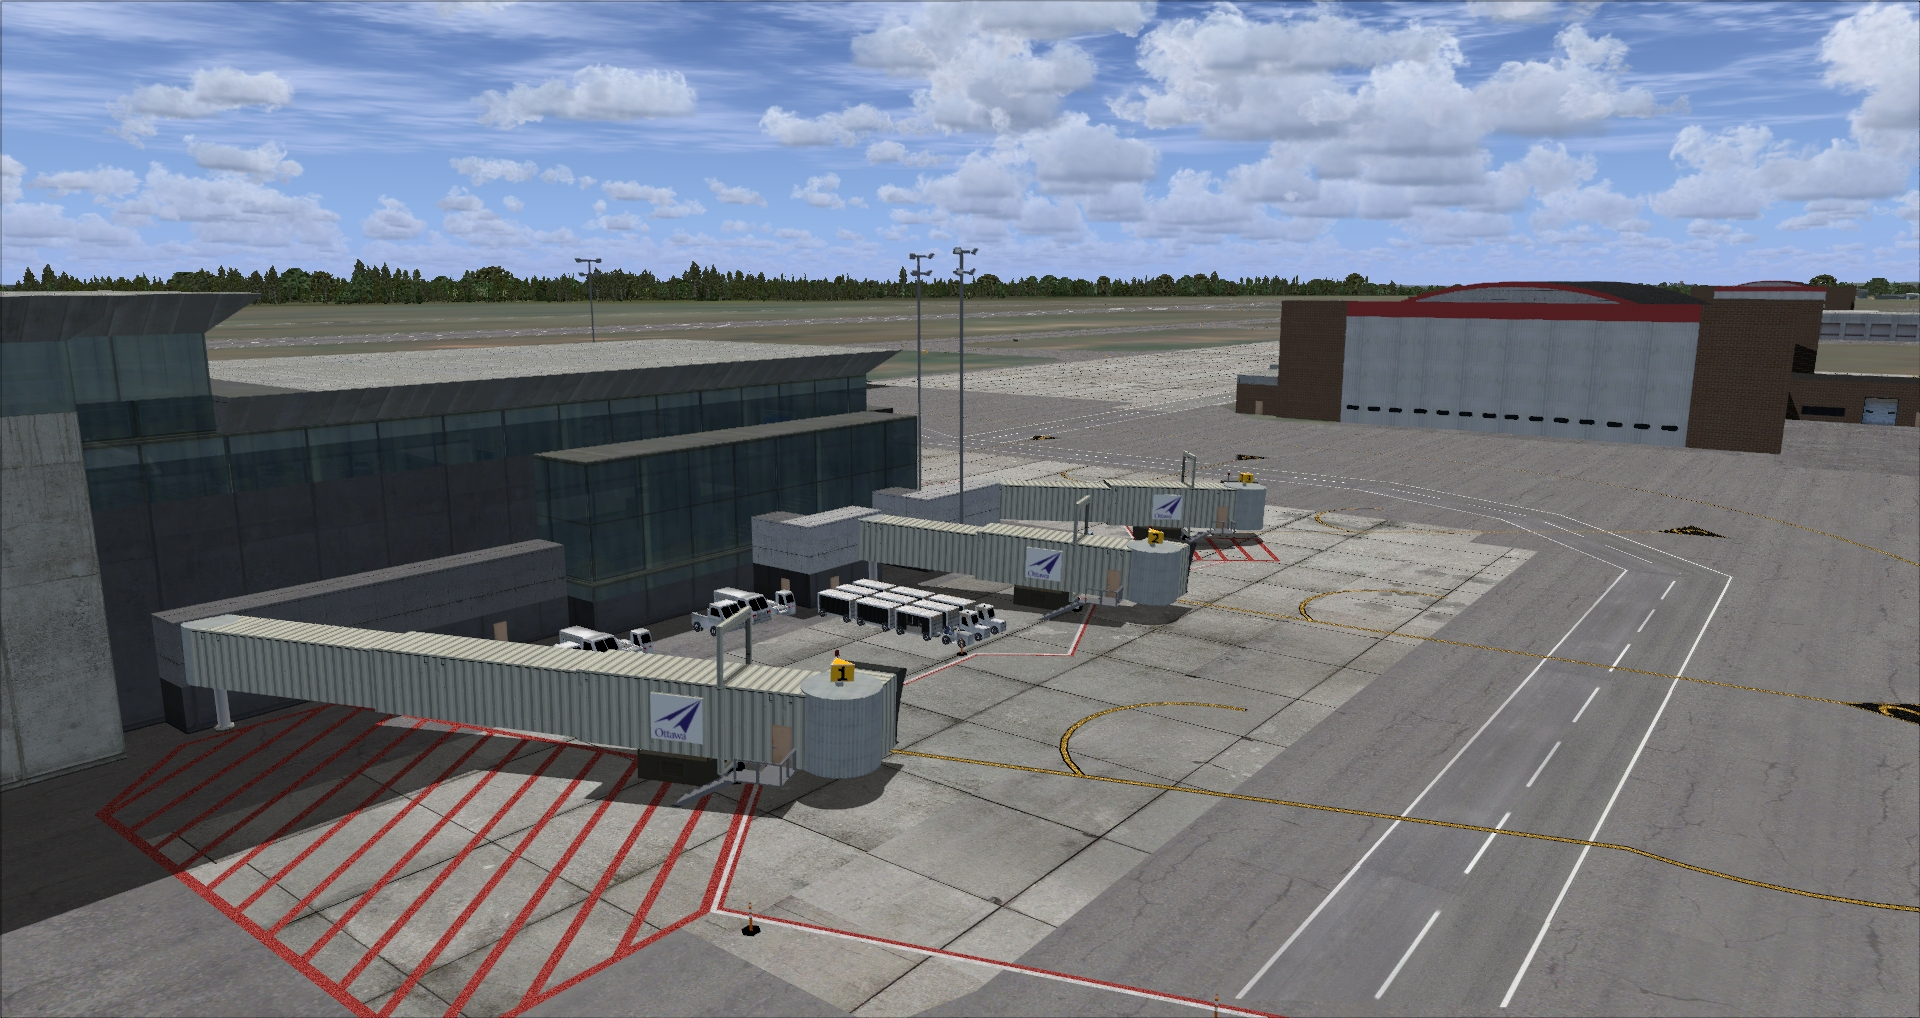 FINAL APPROACH SIMULATIONS - CYOW OTTAWA/MACDONALD-CARTIER INTERNATIONAL AIRPORT P3D4